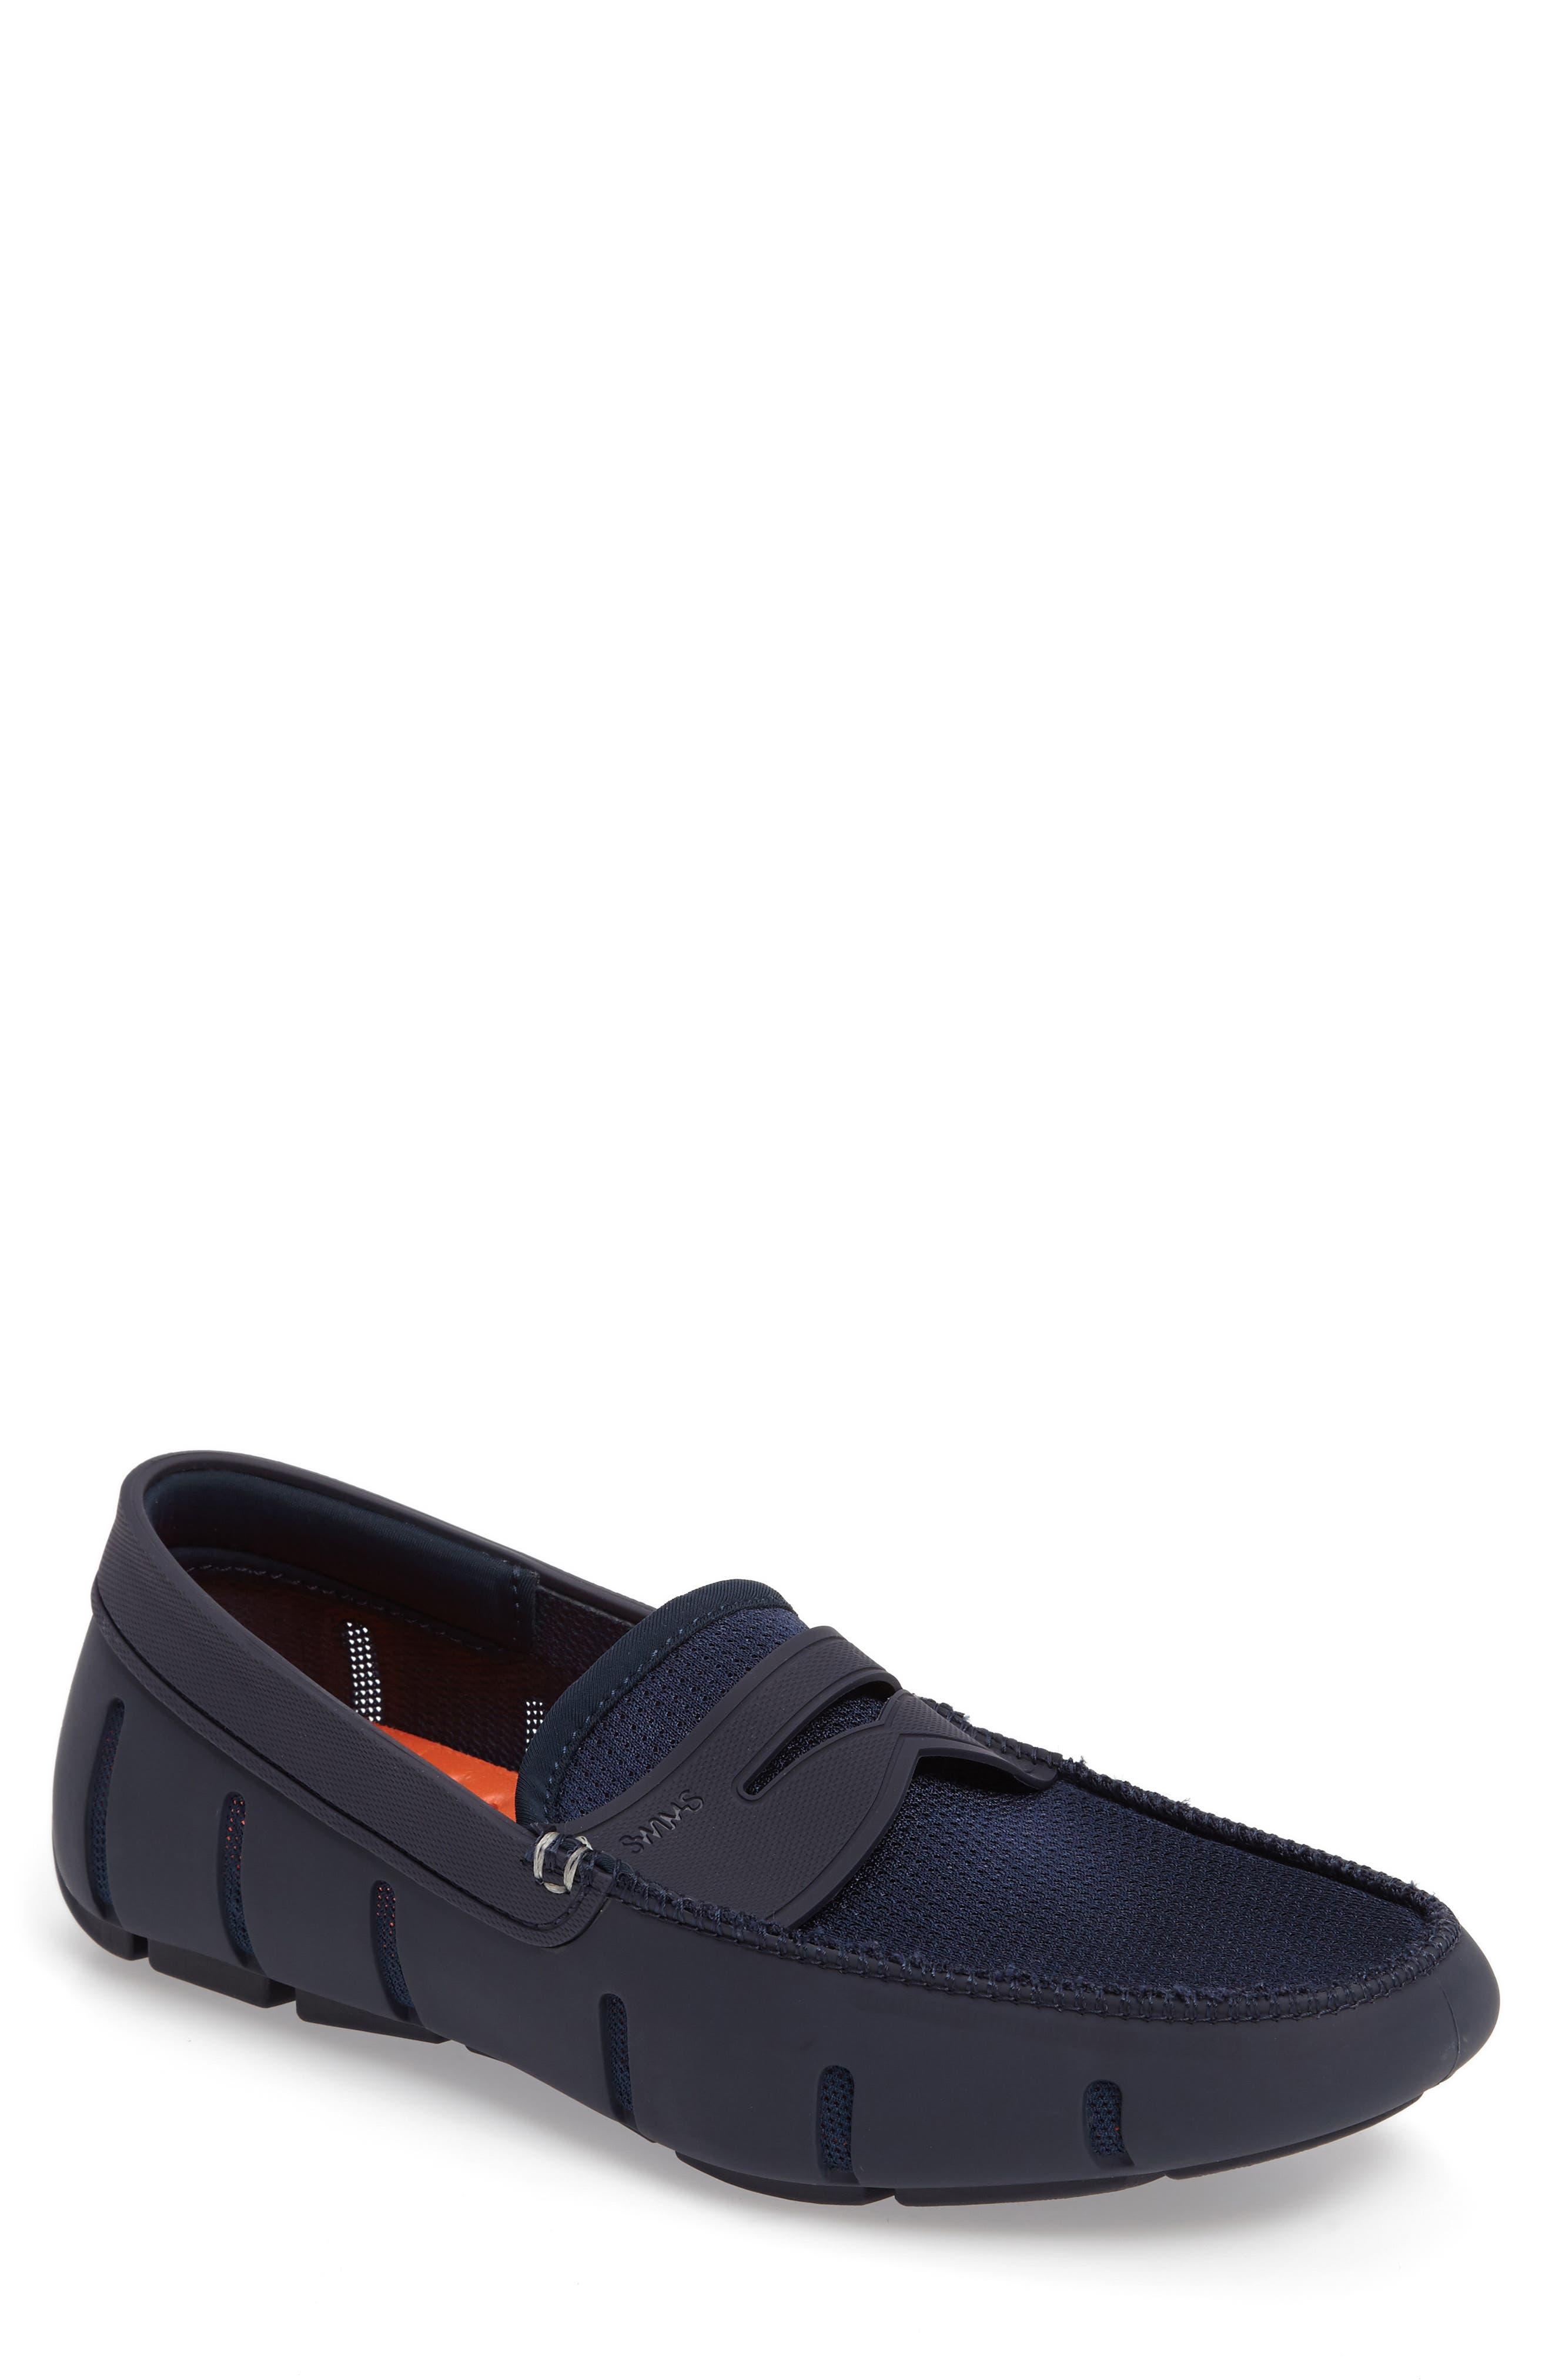 Main Image - Swims Penny Loafer (Men)